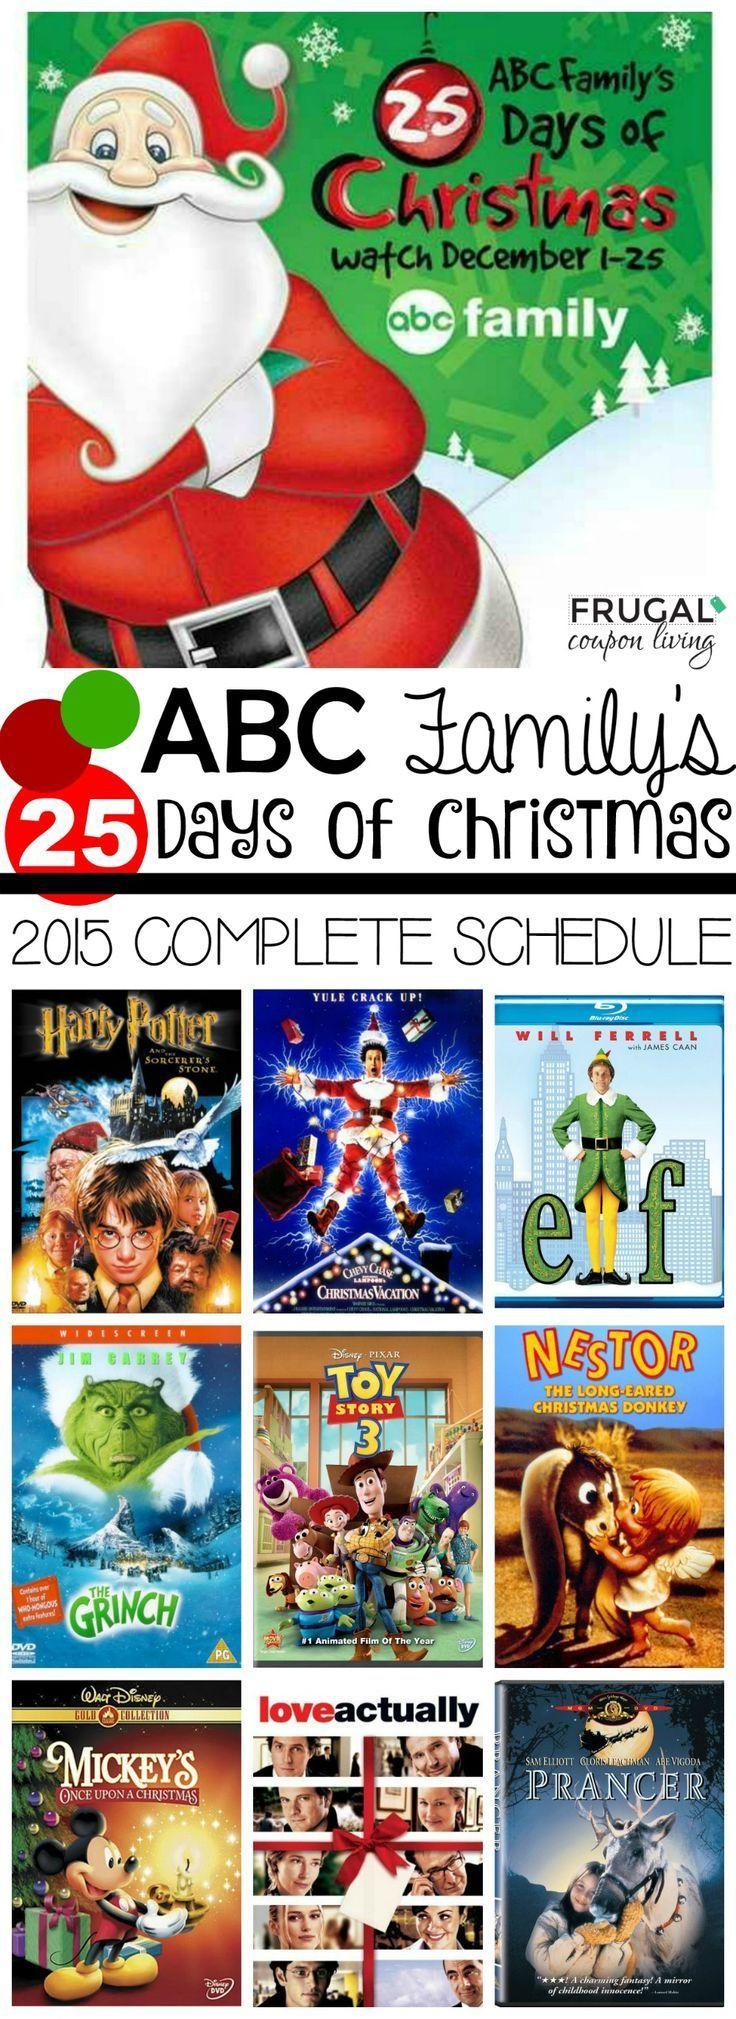 ABC Family 25 Days of Christmas 2015 Schedule | ABC Family ...